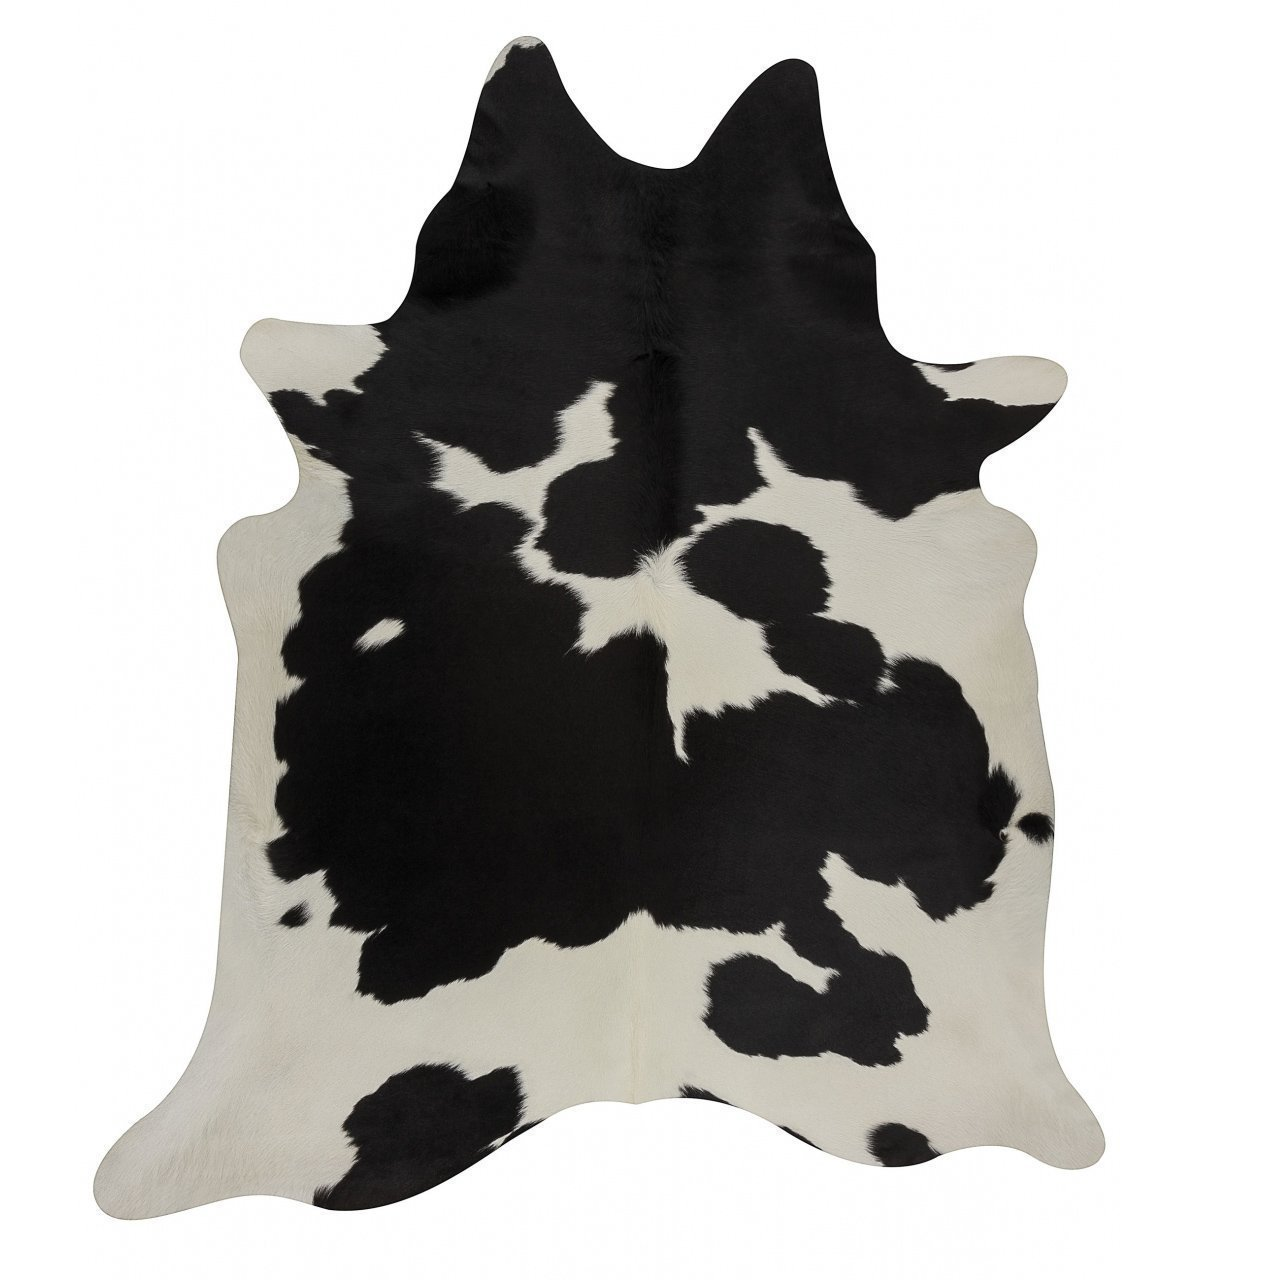 Black White Cowhide Rug Black Cow Skin Leather Rug - Pure Cowhide Rug (5 X 3) Splendid Decor